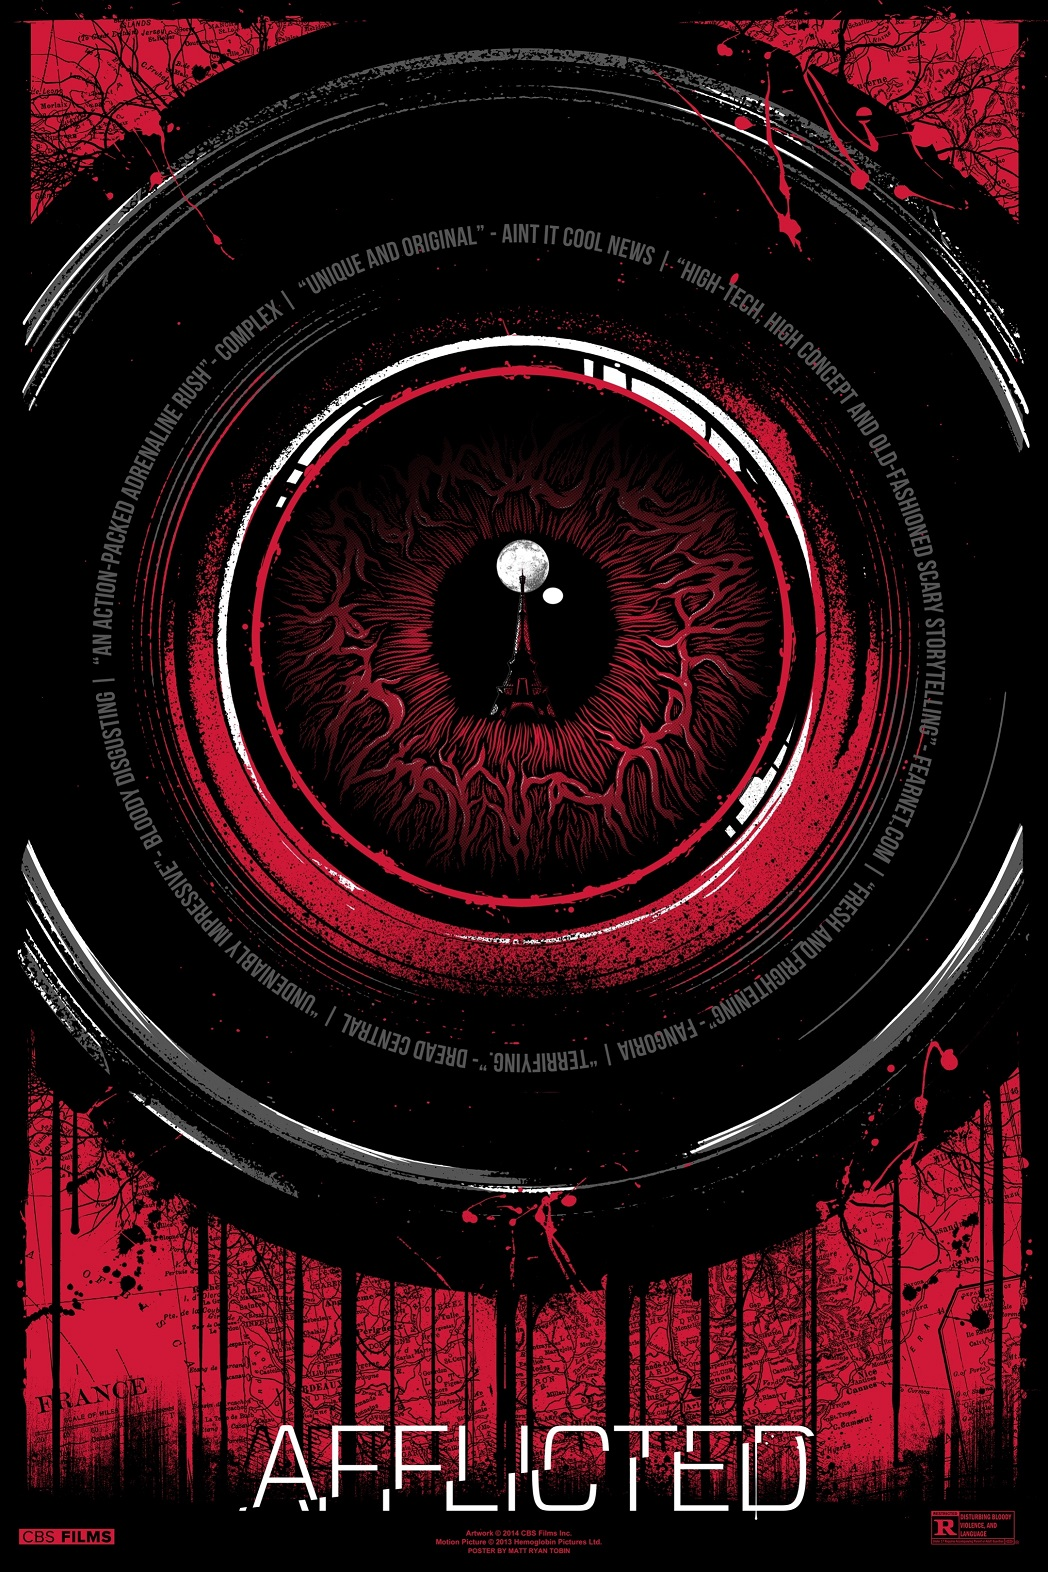 AFFLICTED MattTobin Horror Film Afflicted Gets Cool Alternative Poster